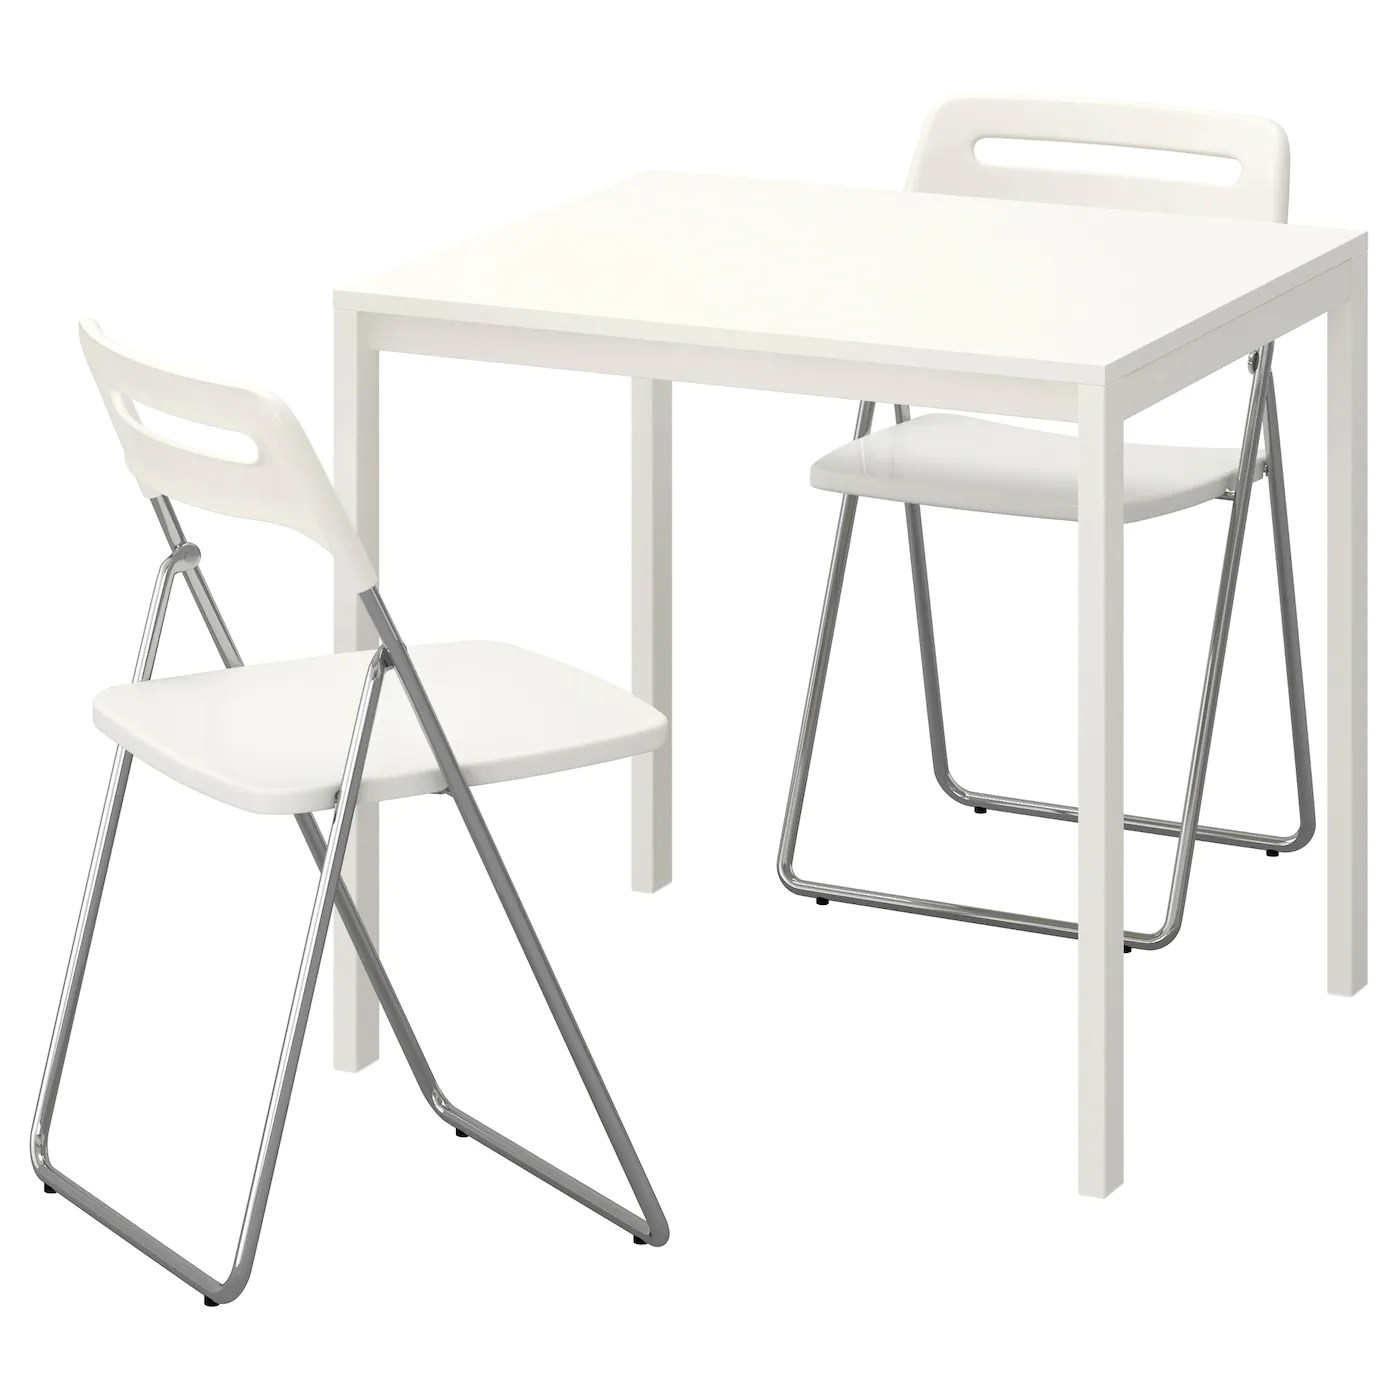 folding table and chairs white staples office chair parts nisse melltorp 2 75